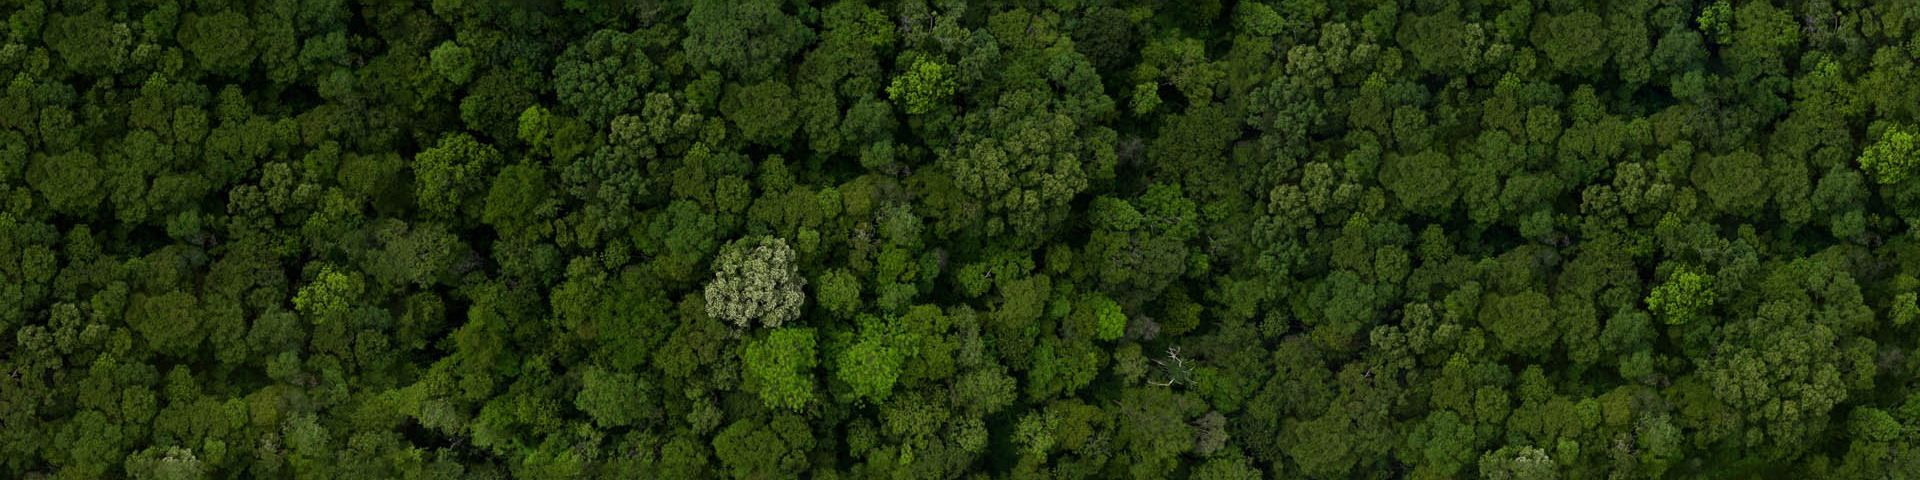 An arial view of a densely wooded forest.